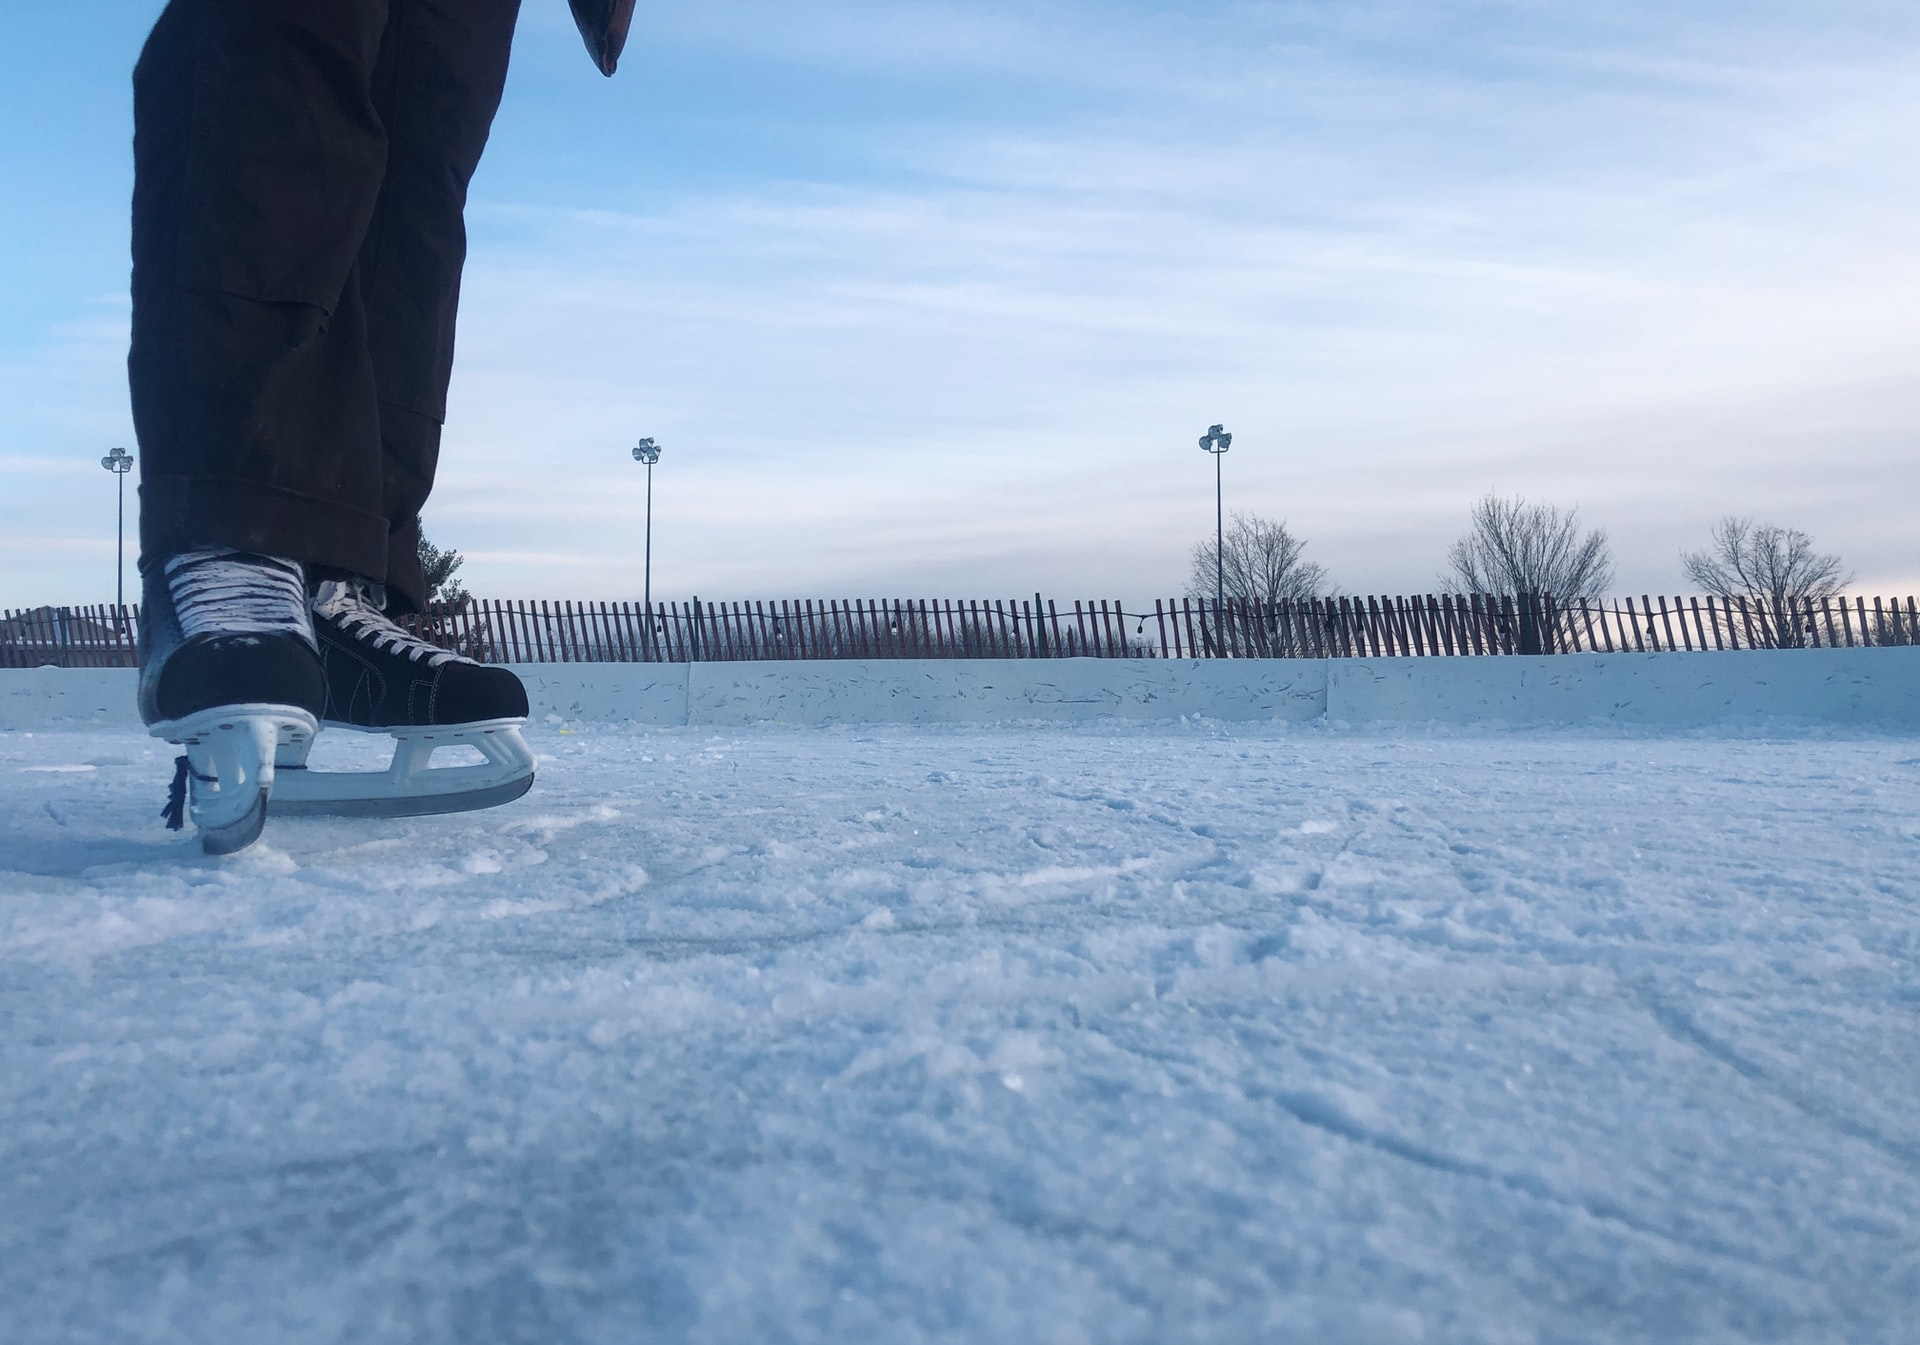 Best places to ice skate in India